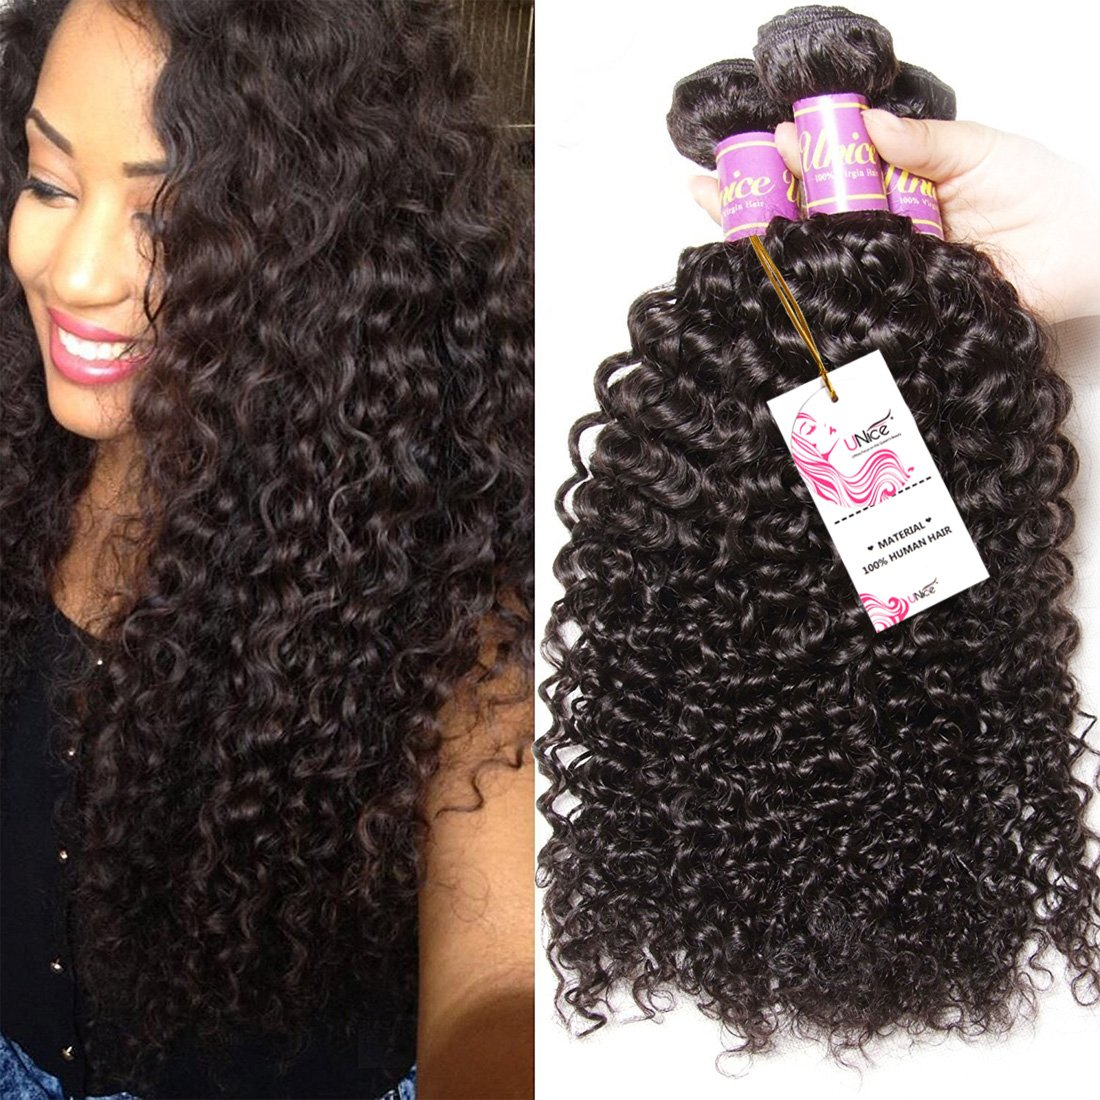 3 Bundles Brazilian Curly Virgin Hair Weave Unprocessed Human Hair Extensions Natural Color Can Be Dyed and Bleached Tangle Free (18 20 22inches)